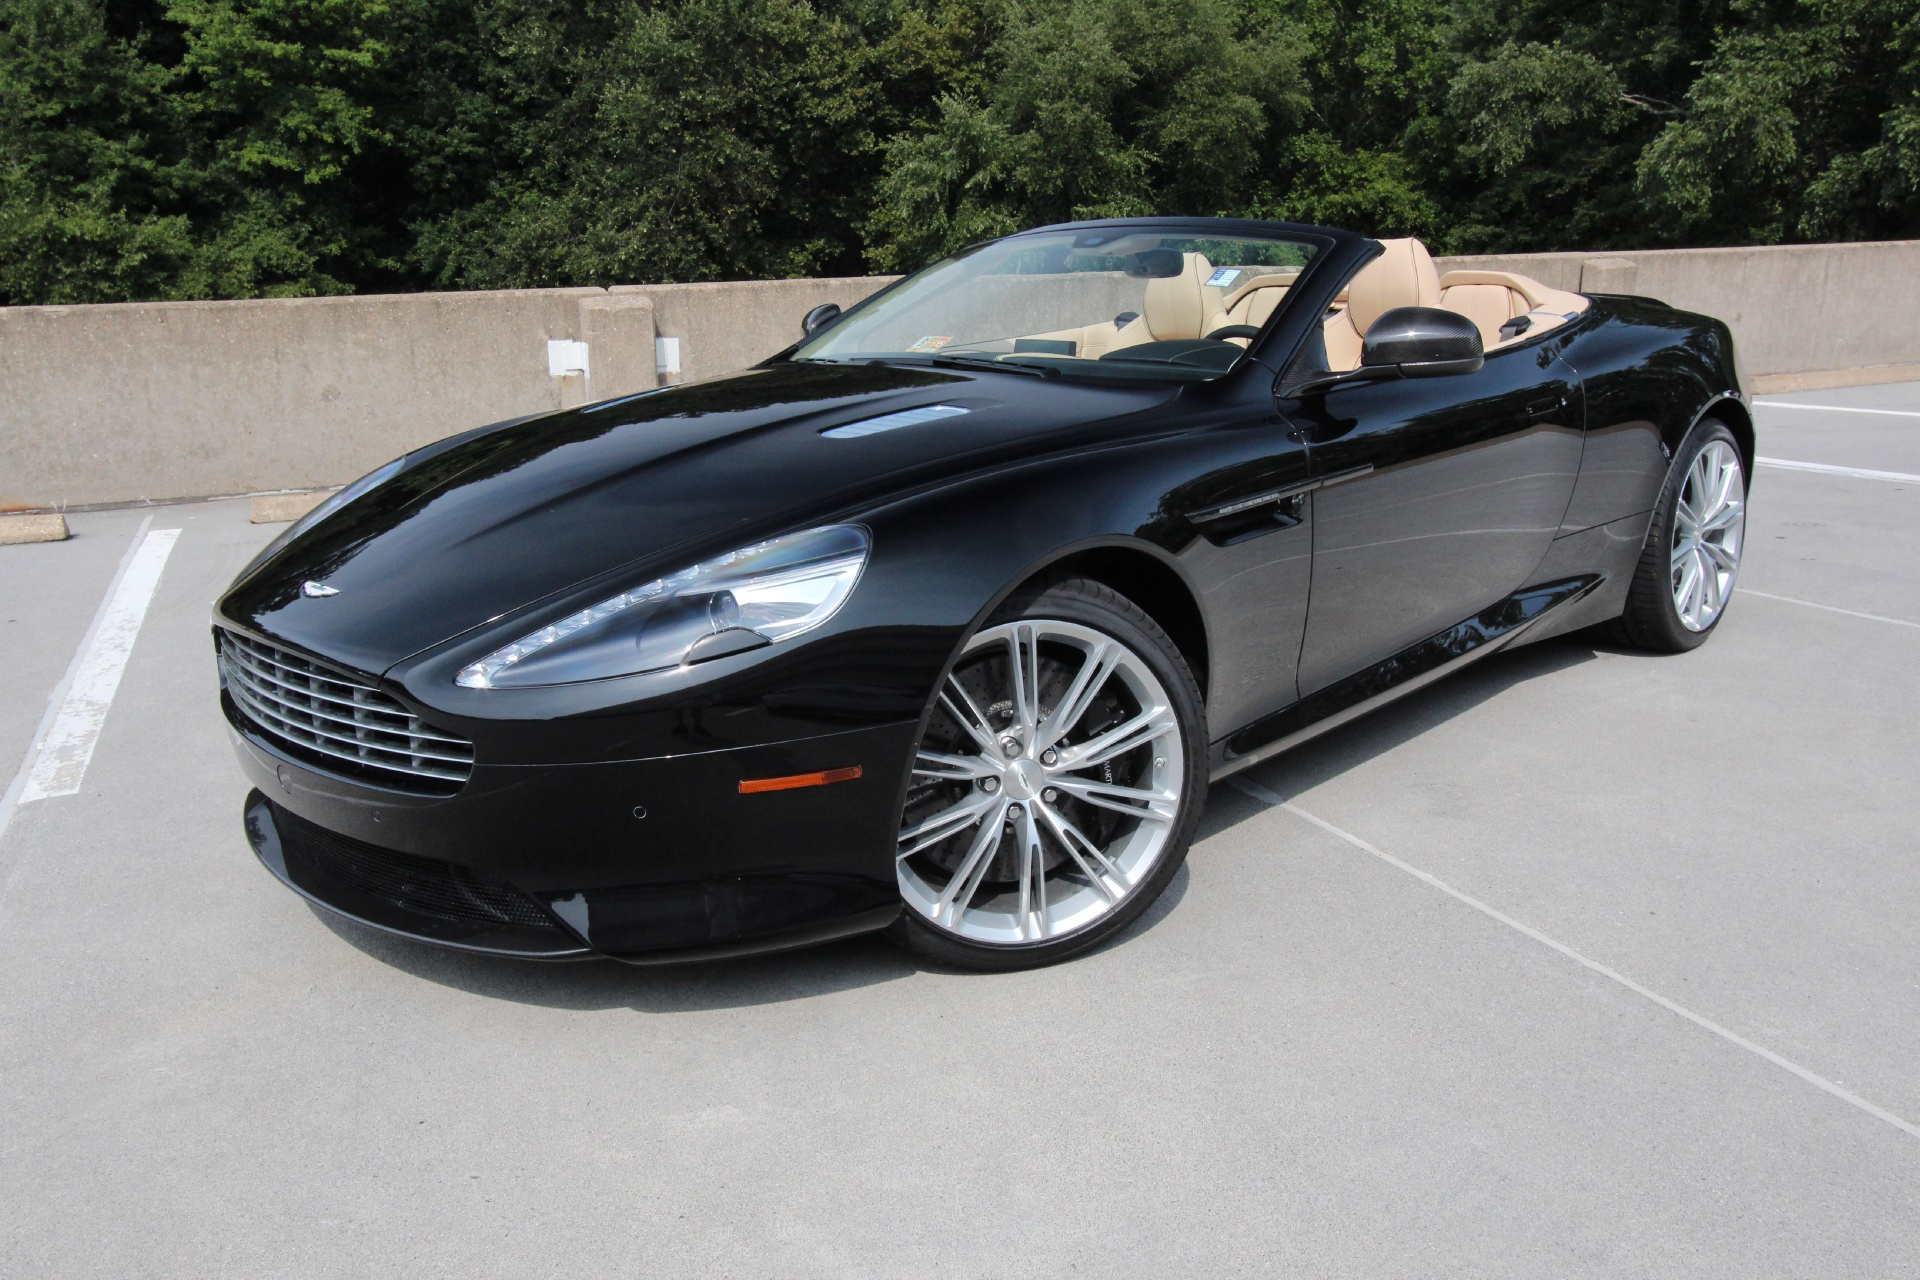 2015 aston martin db9 volante carbon edition stock 5nb16222 for sale near vienna va va. Black Bedroom Furniture Sets. Home Design Ideas